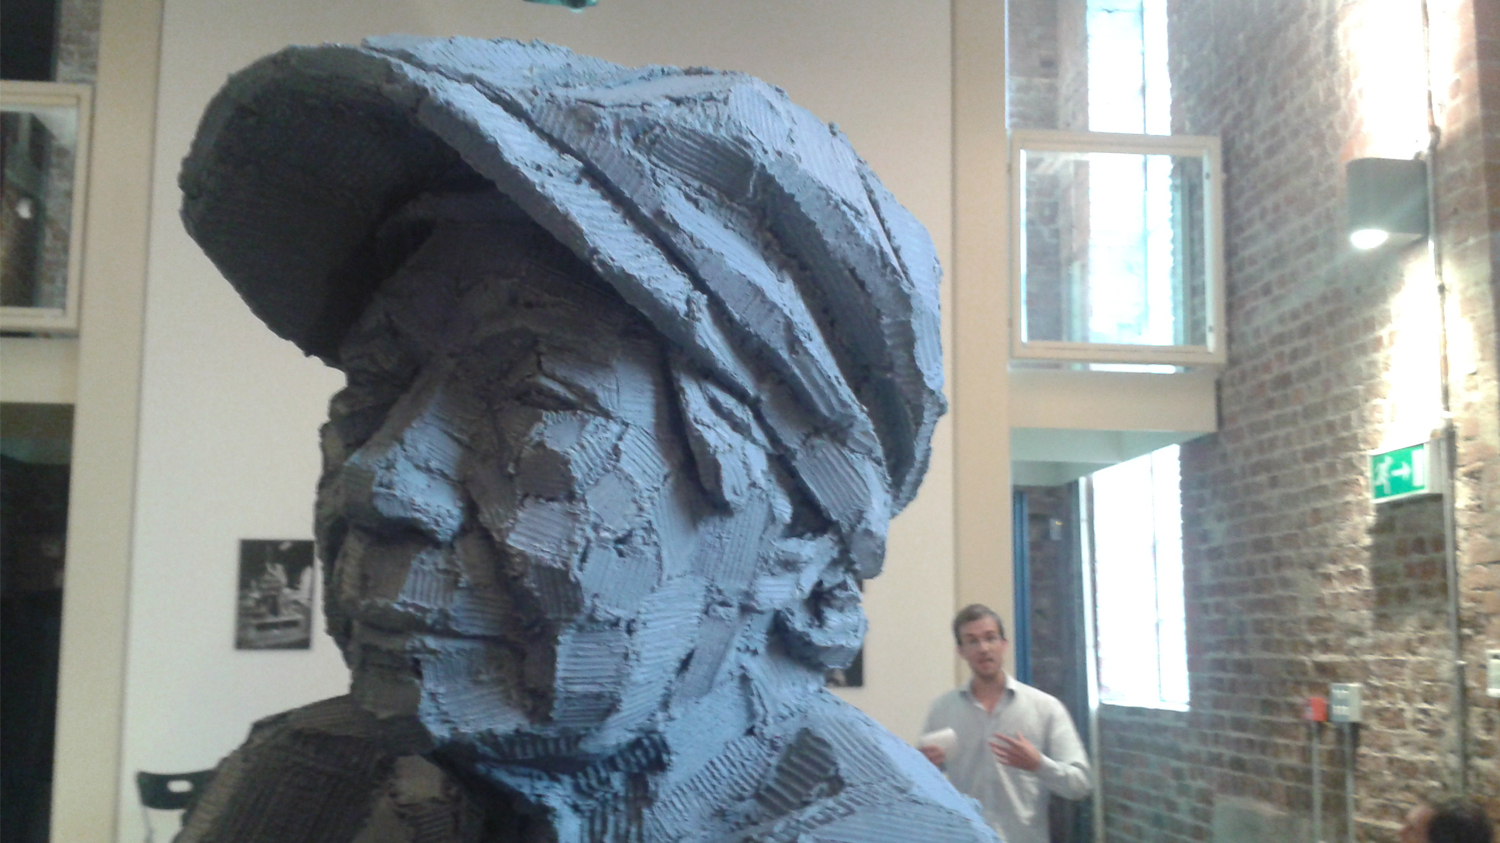 A sculpture of a mans head wearing a cap, by Adrian Jeans